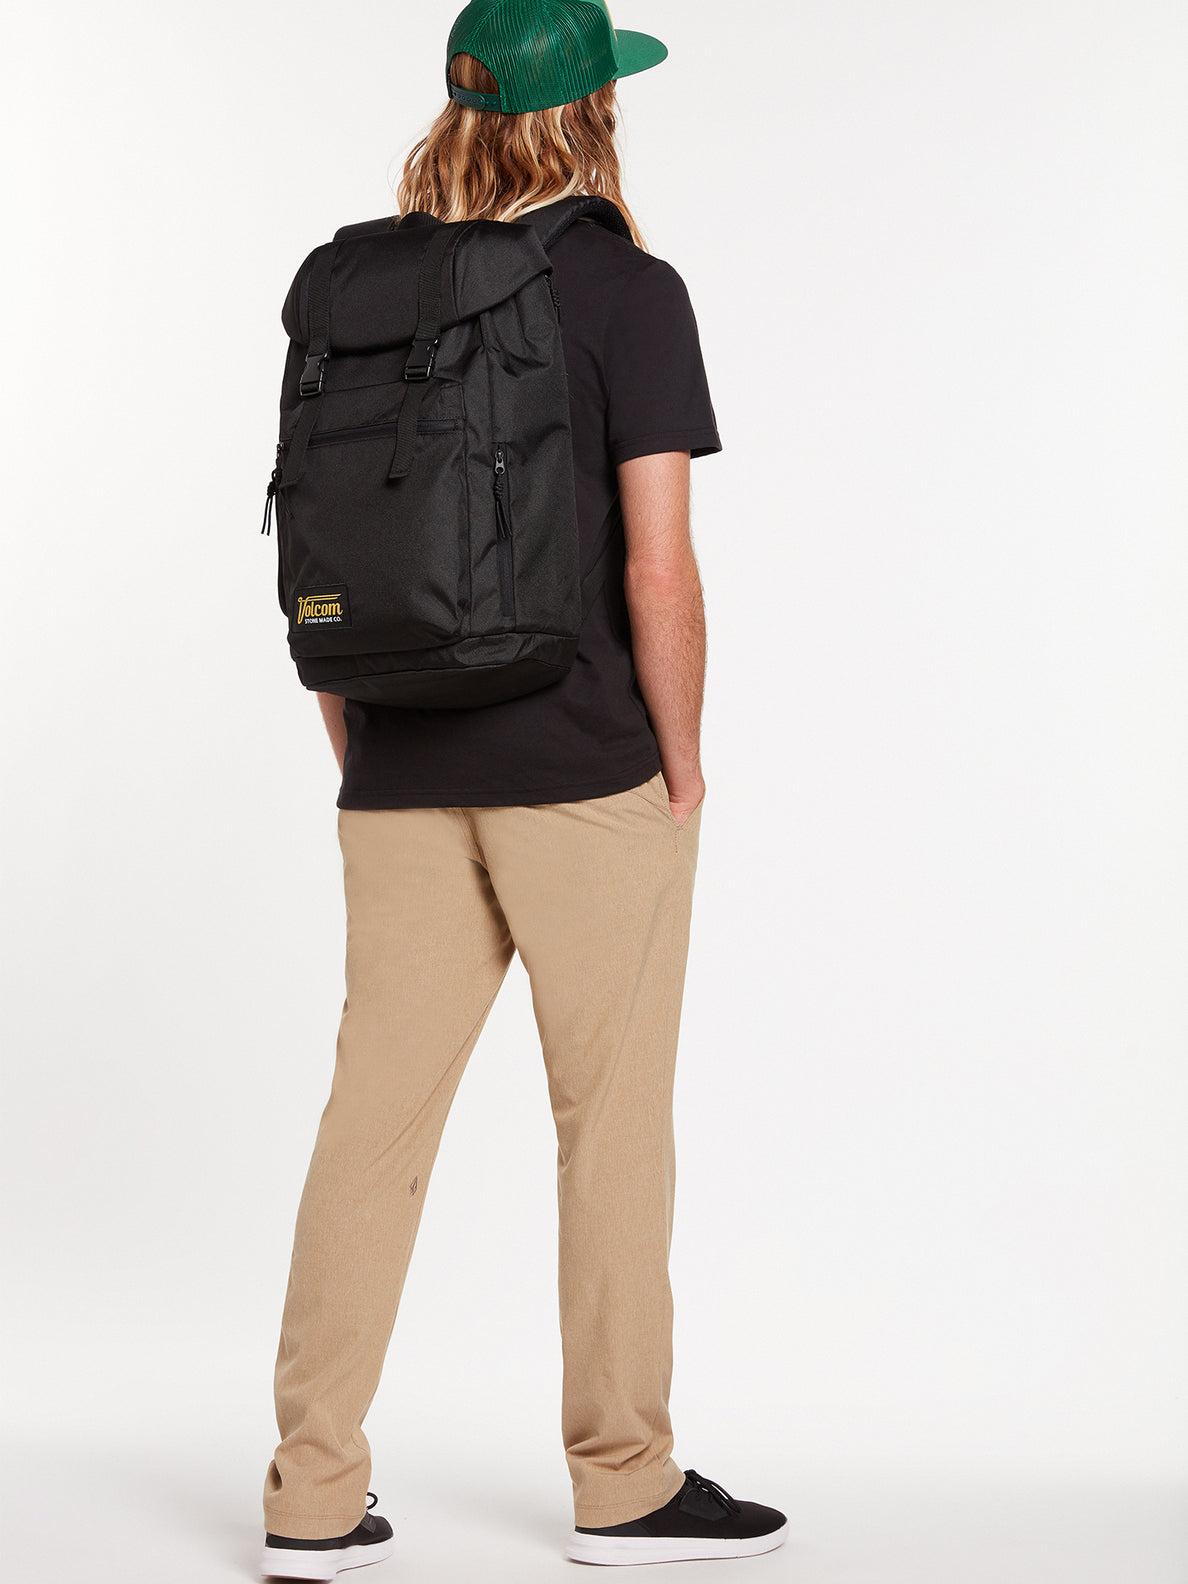 Ruckfold Backpack - Ink Black (D6522006_INK) [61]